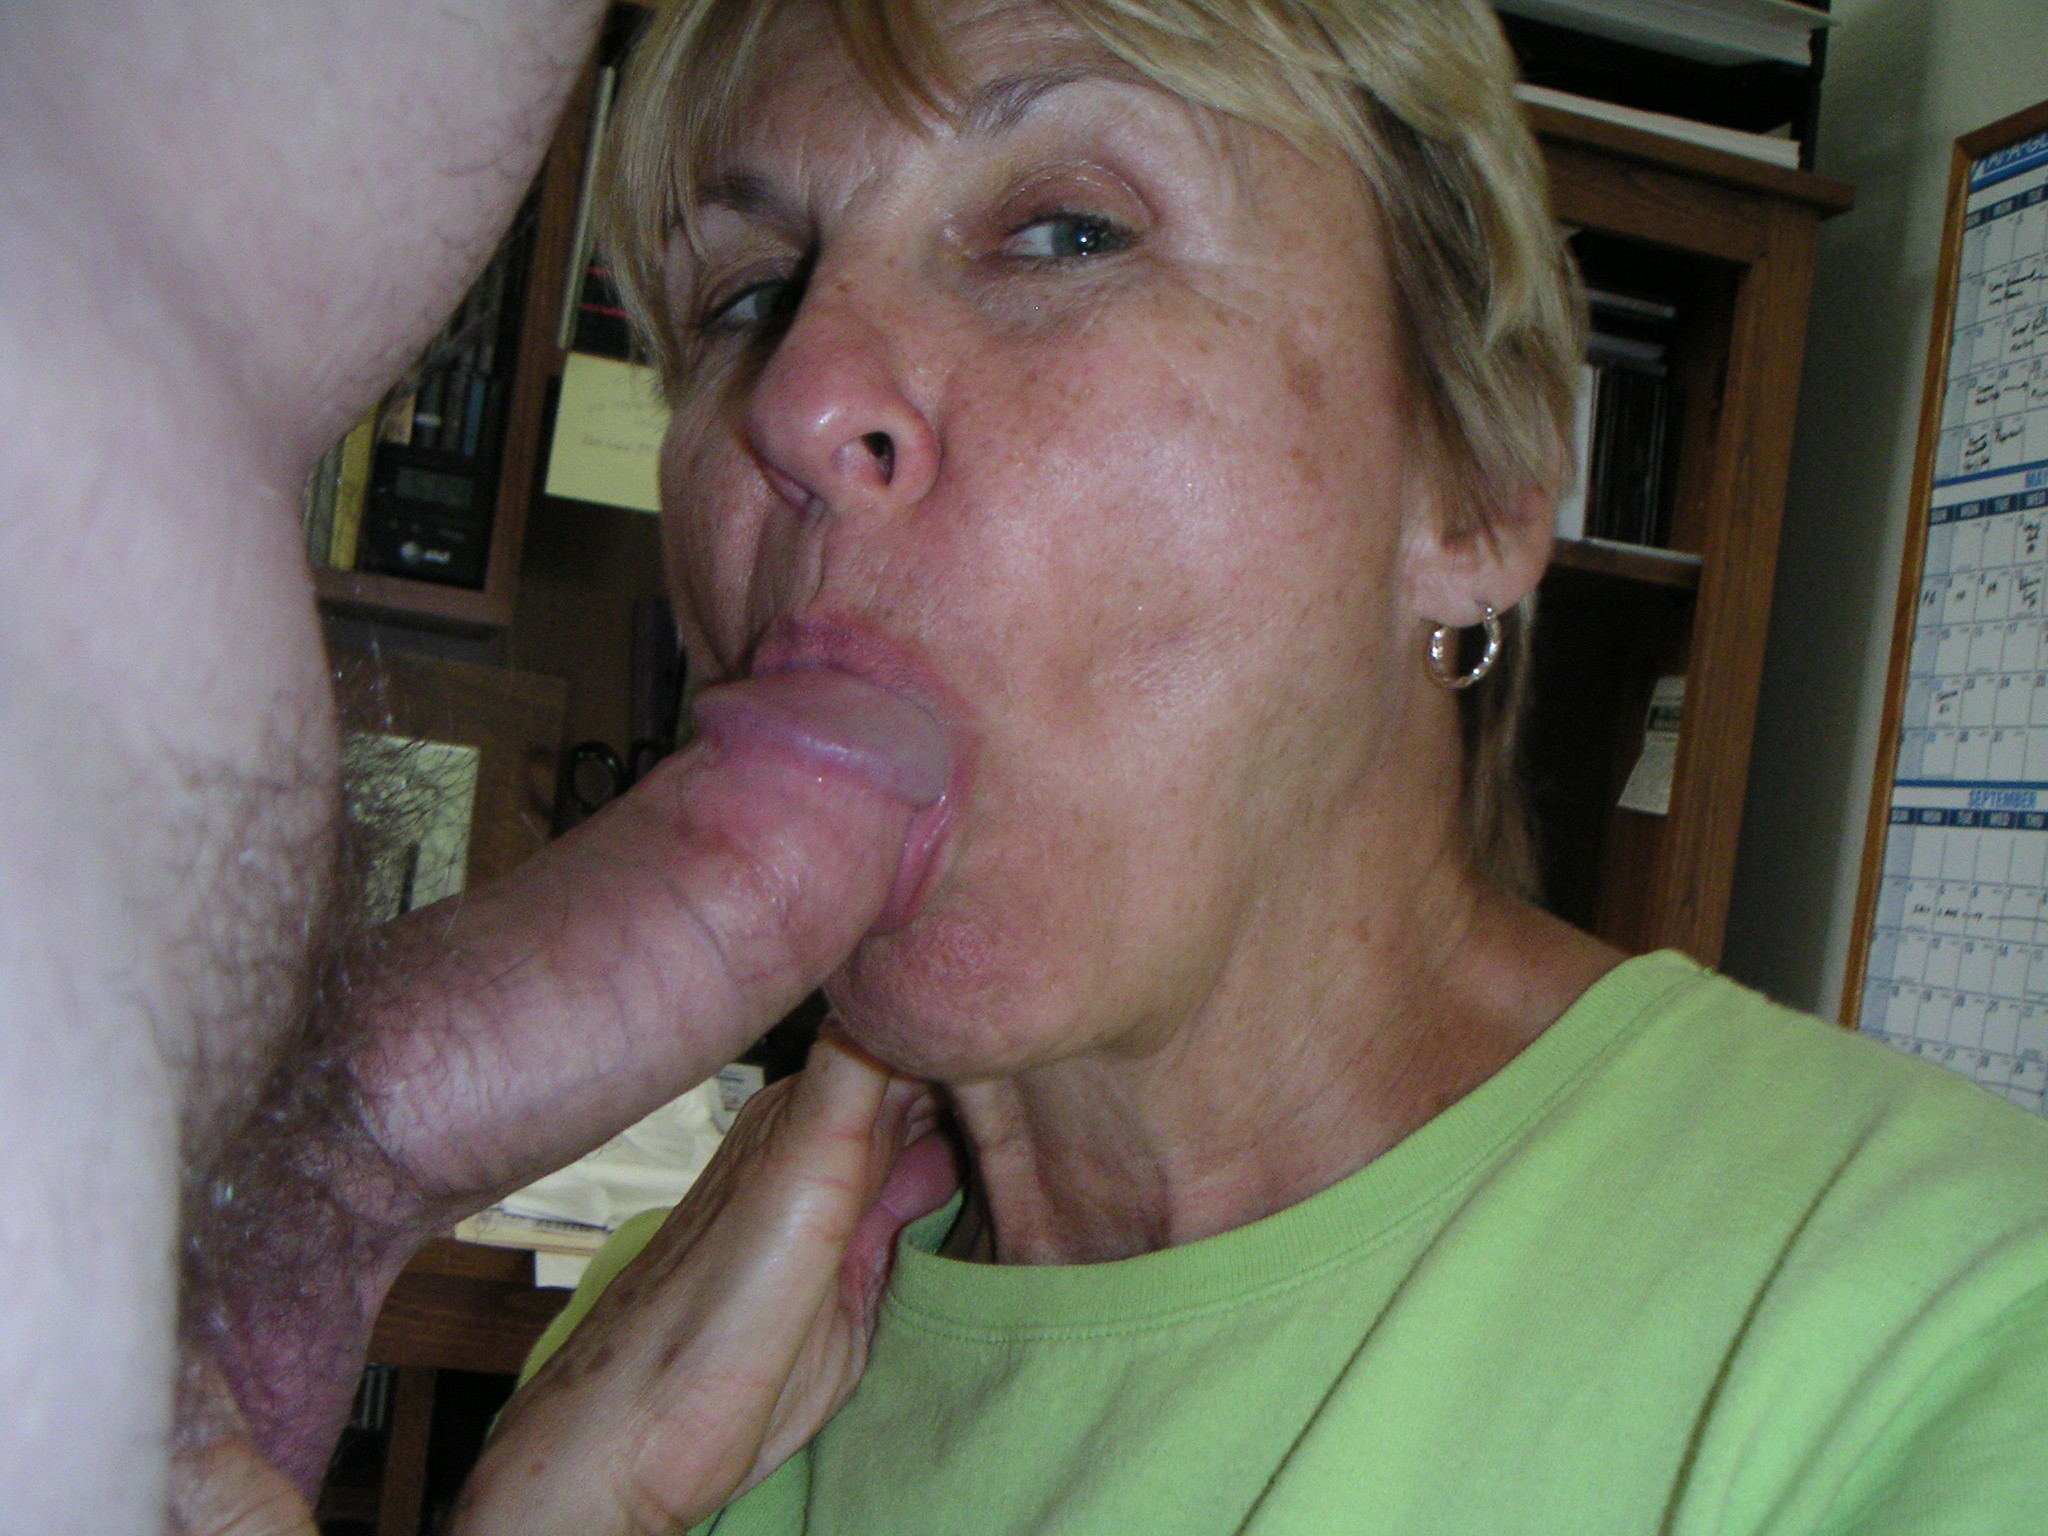 Sucking a dick granny